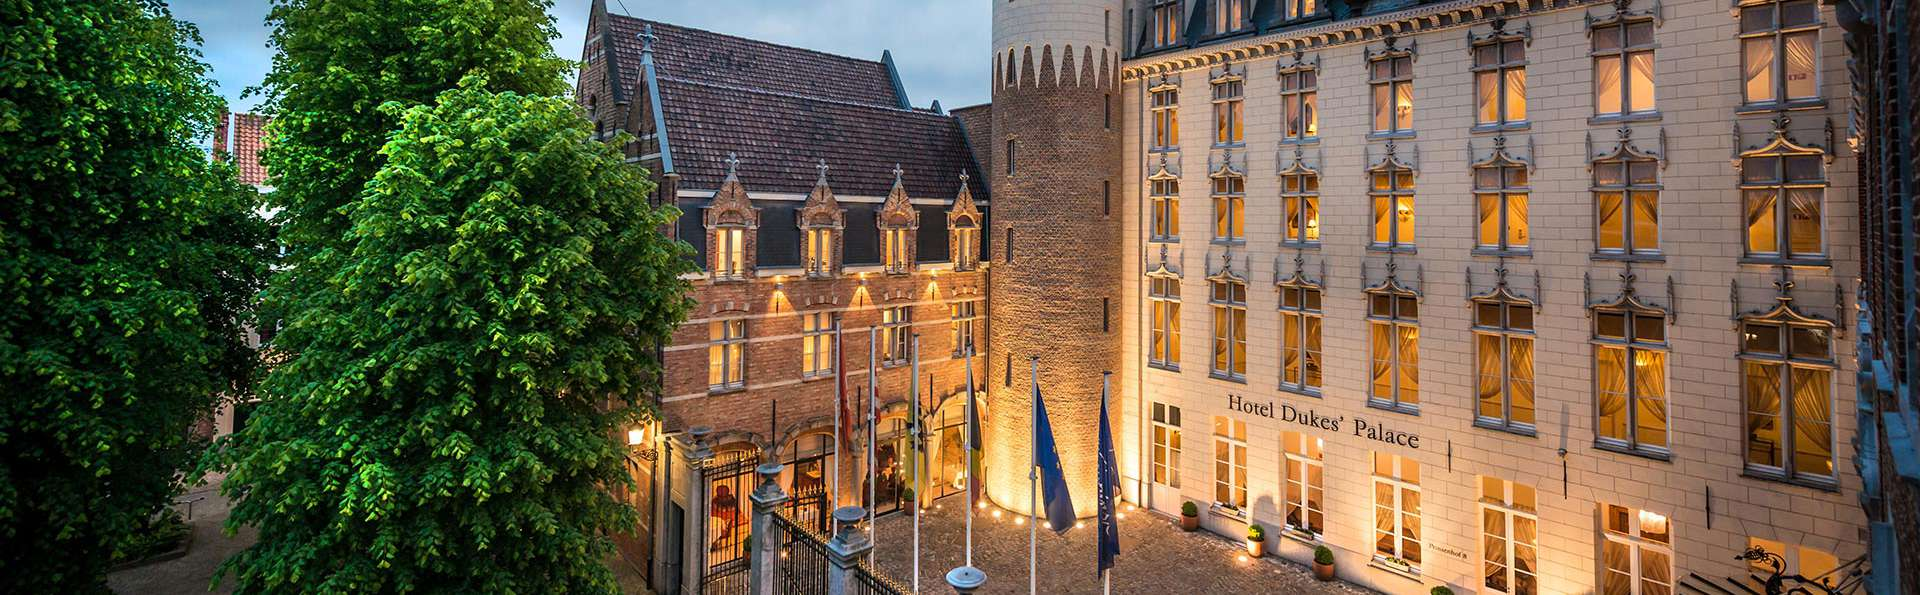 Hotel Dukes' Palace - EDIT_front1.jpg